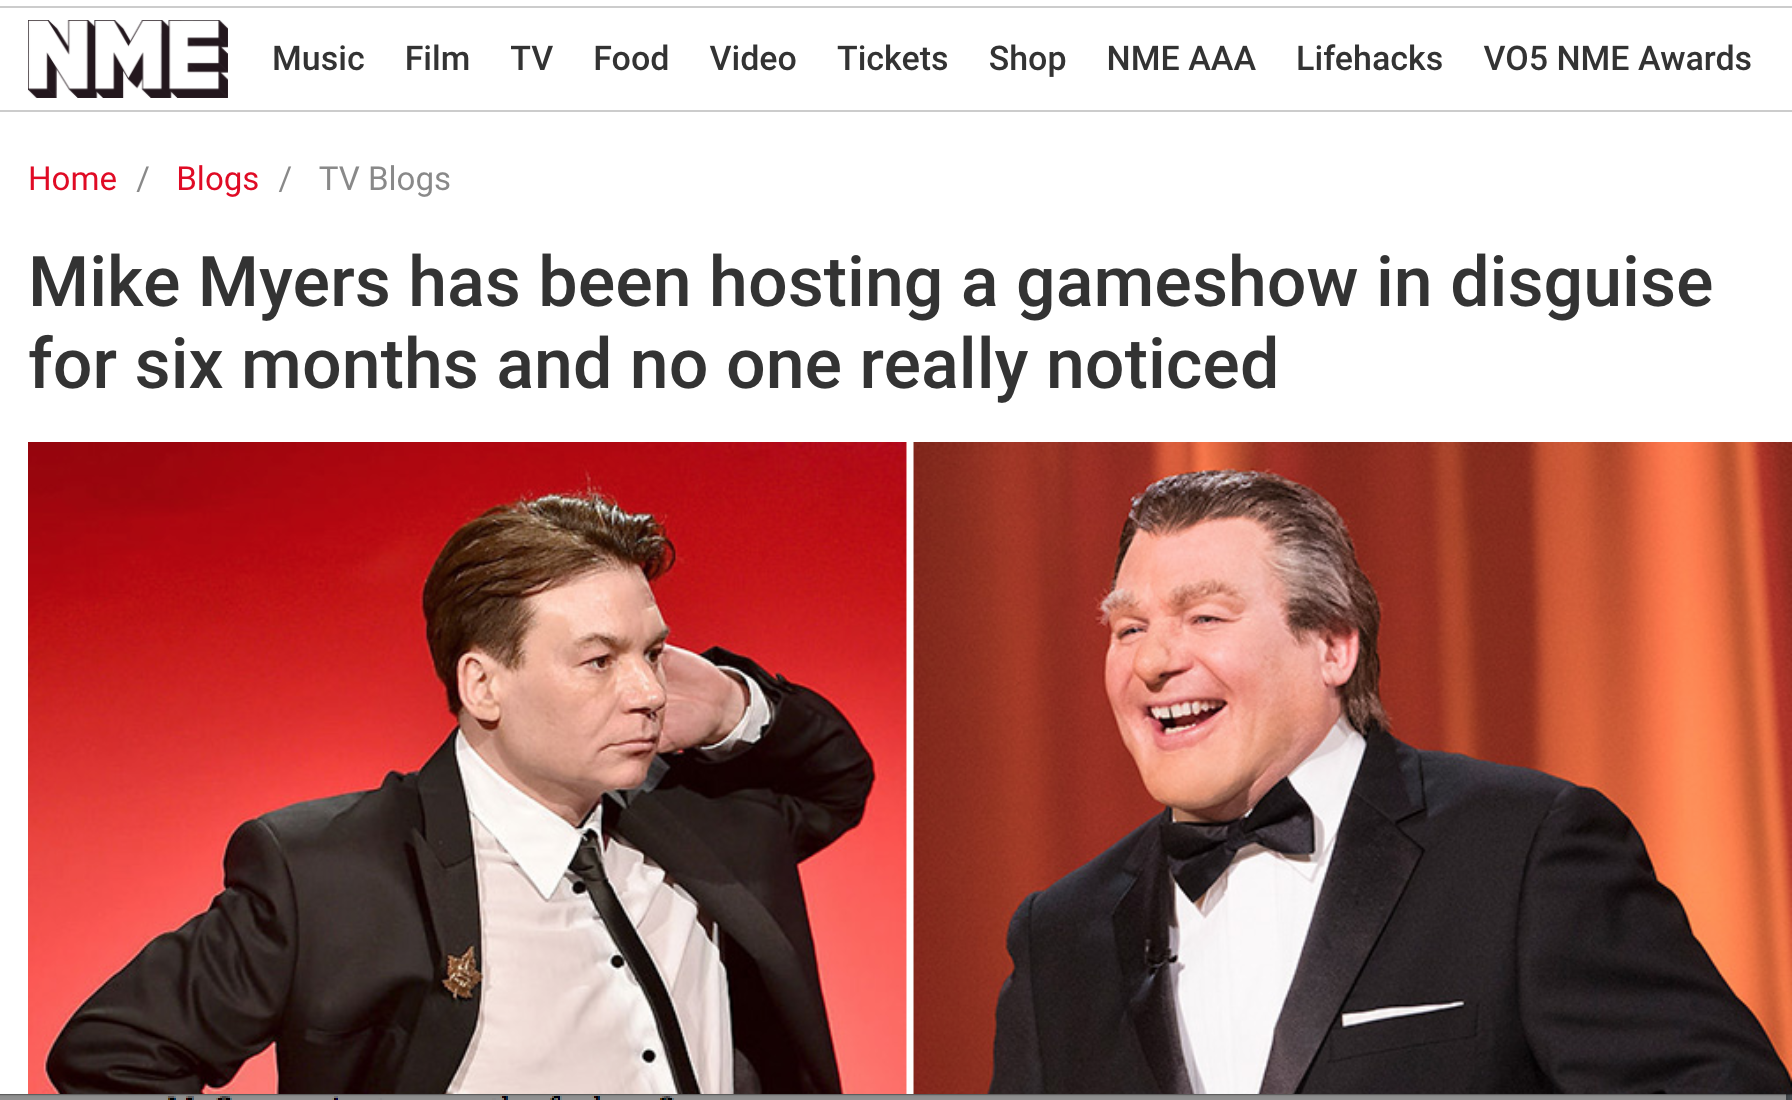 1/09/18  - The Gong Show has been renewed!!! And we're mentioned in the article. Check it out!   http://www.nme.com/blogs/tv-blogs/mike-myers-the-gong-show-2216193